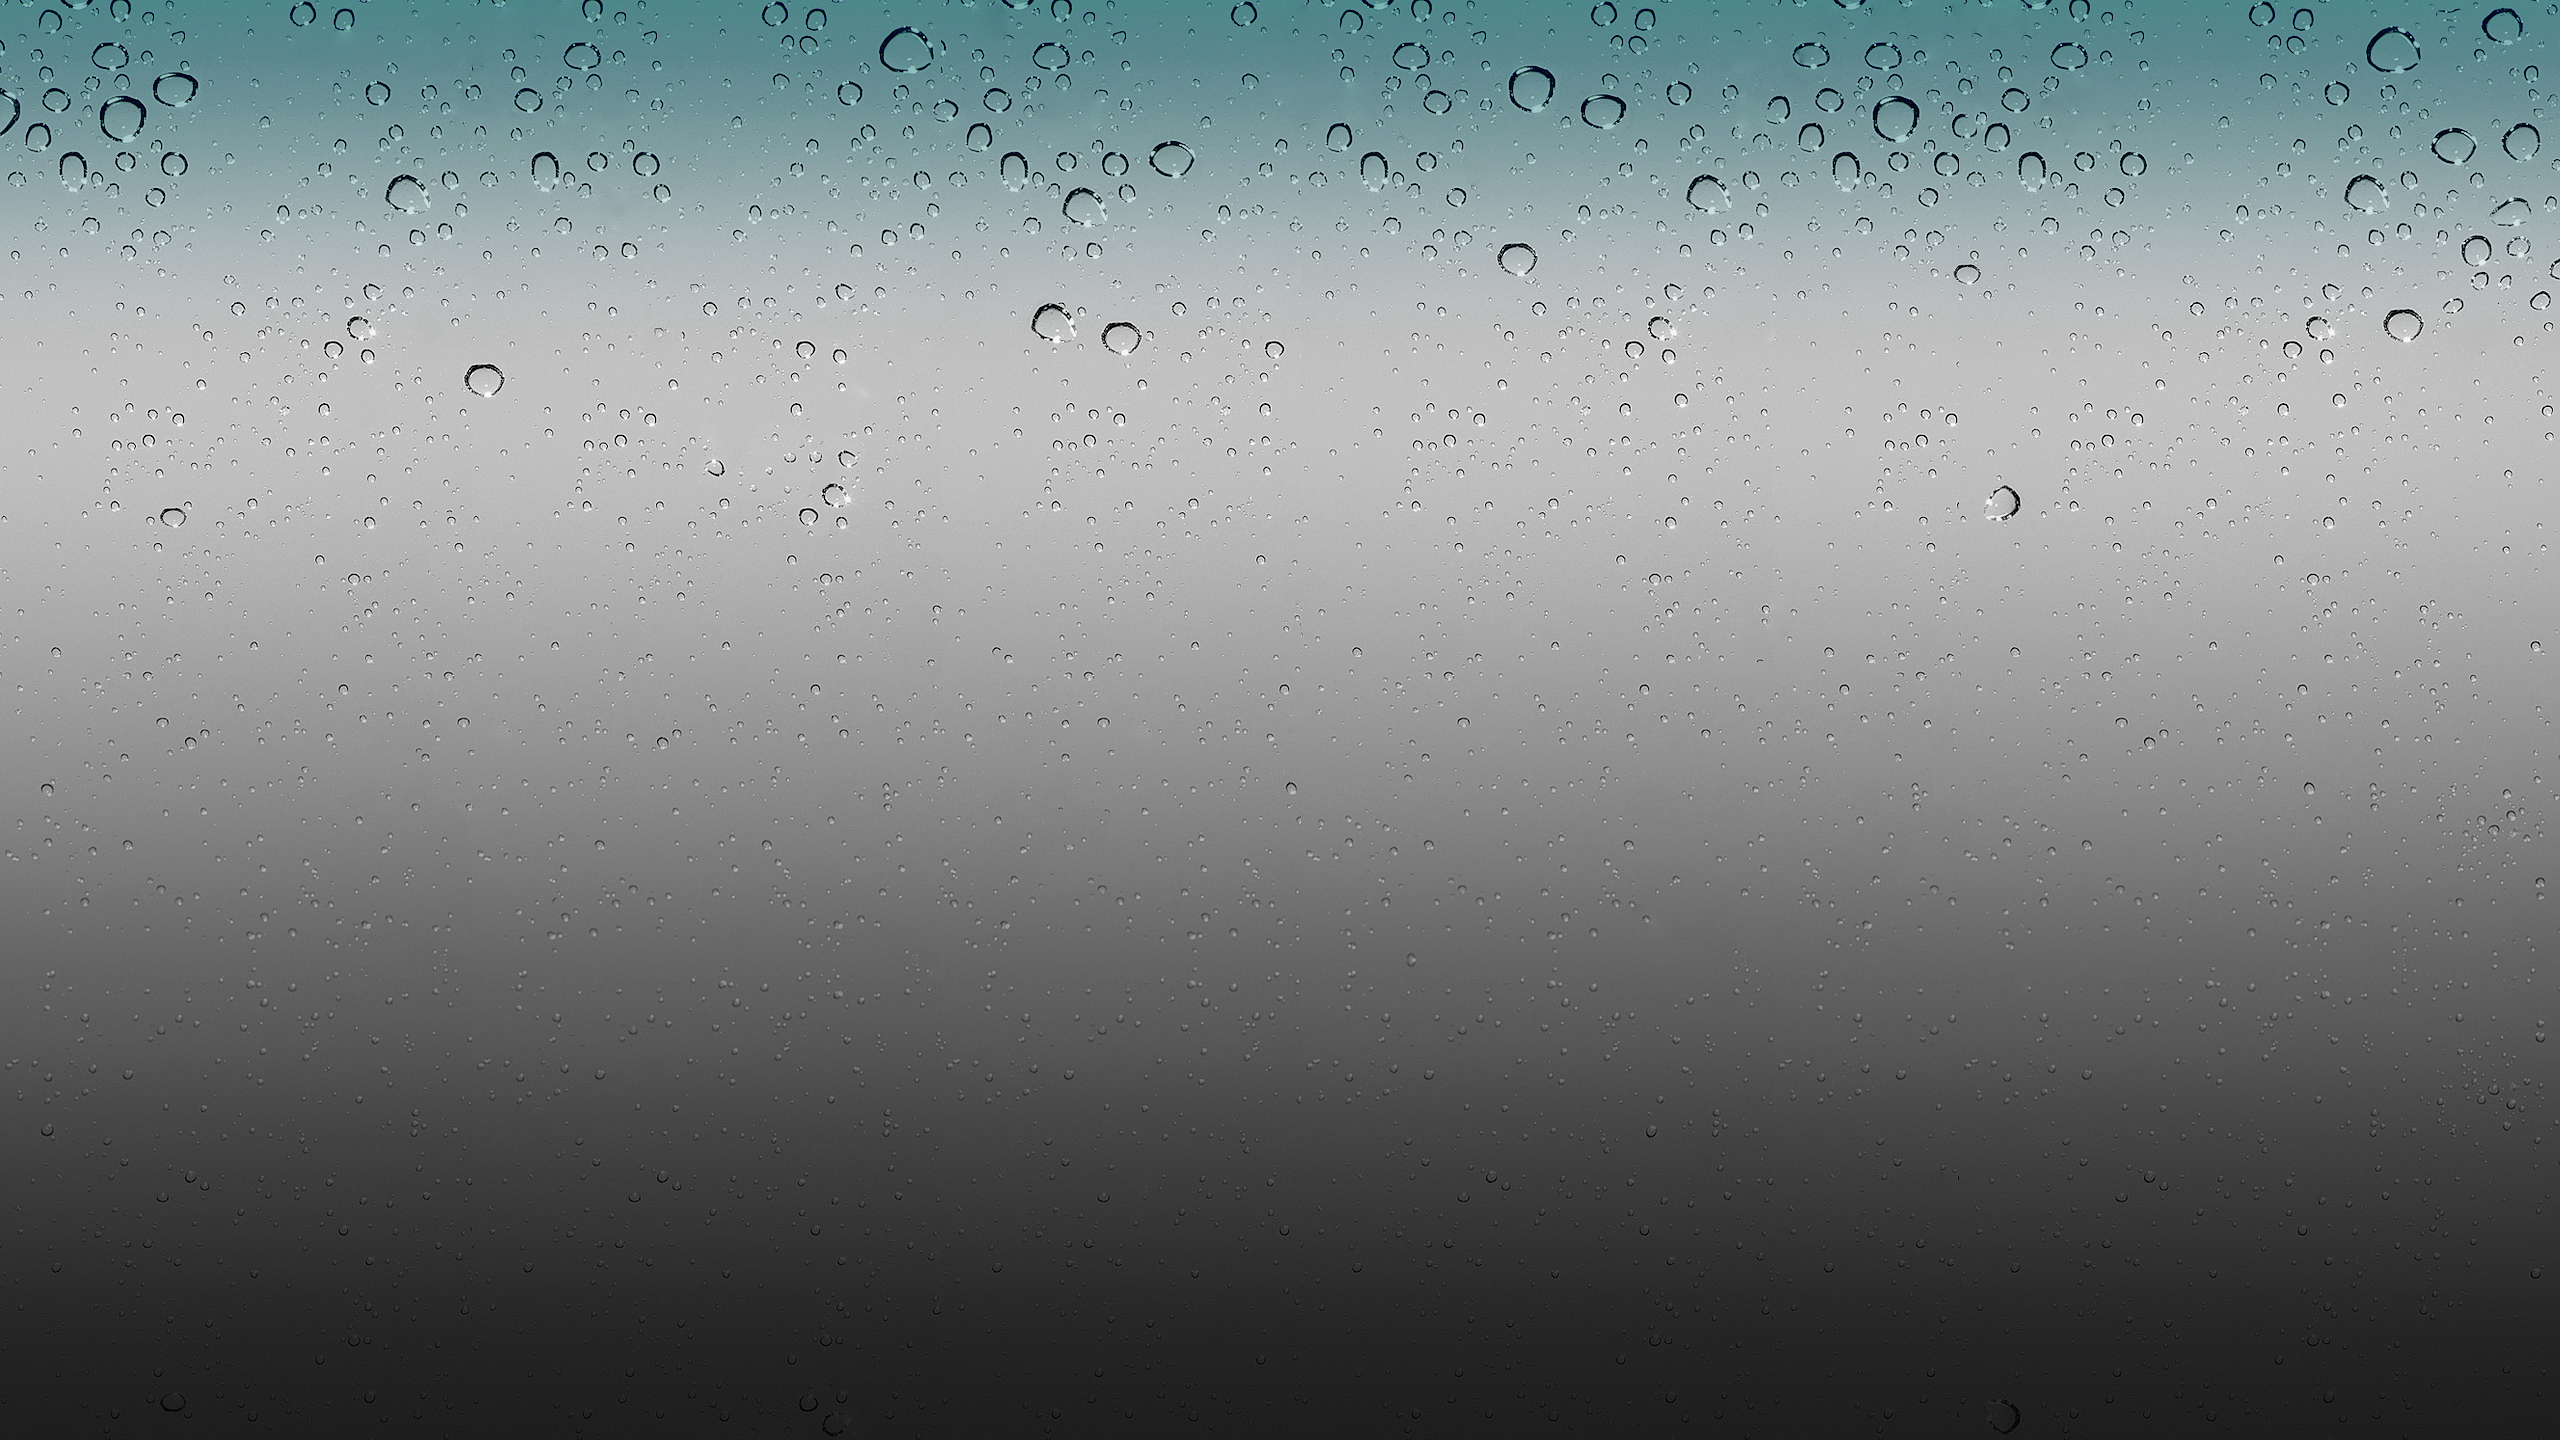 Apple Raindrops Wallpaper 2560x1440